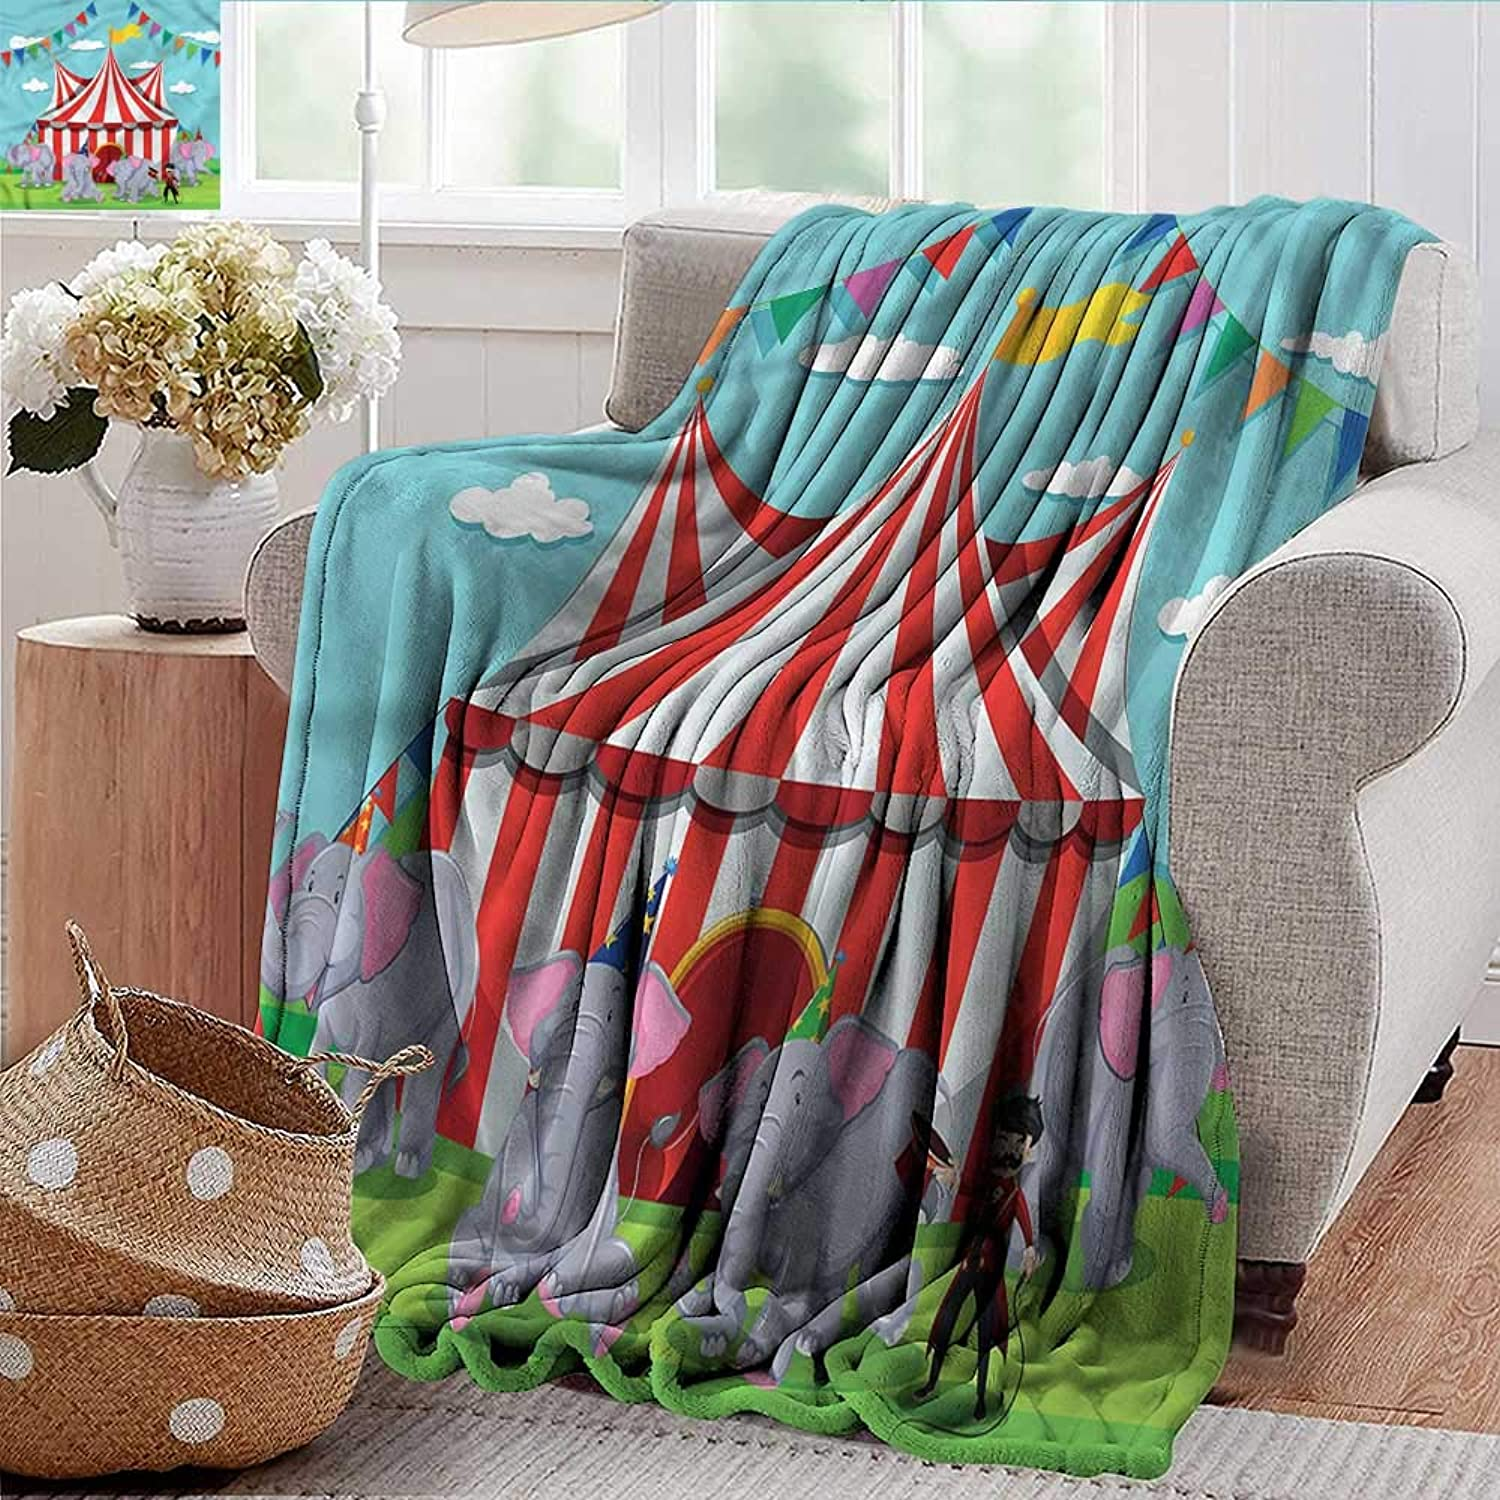 Xaviera Doherty Weighted Blanket for Kids Circus,Pennant Flags Elephants Show Soft Summer Cooling Lightweight Bed Blanket 50 x60